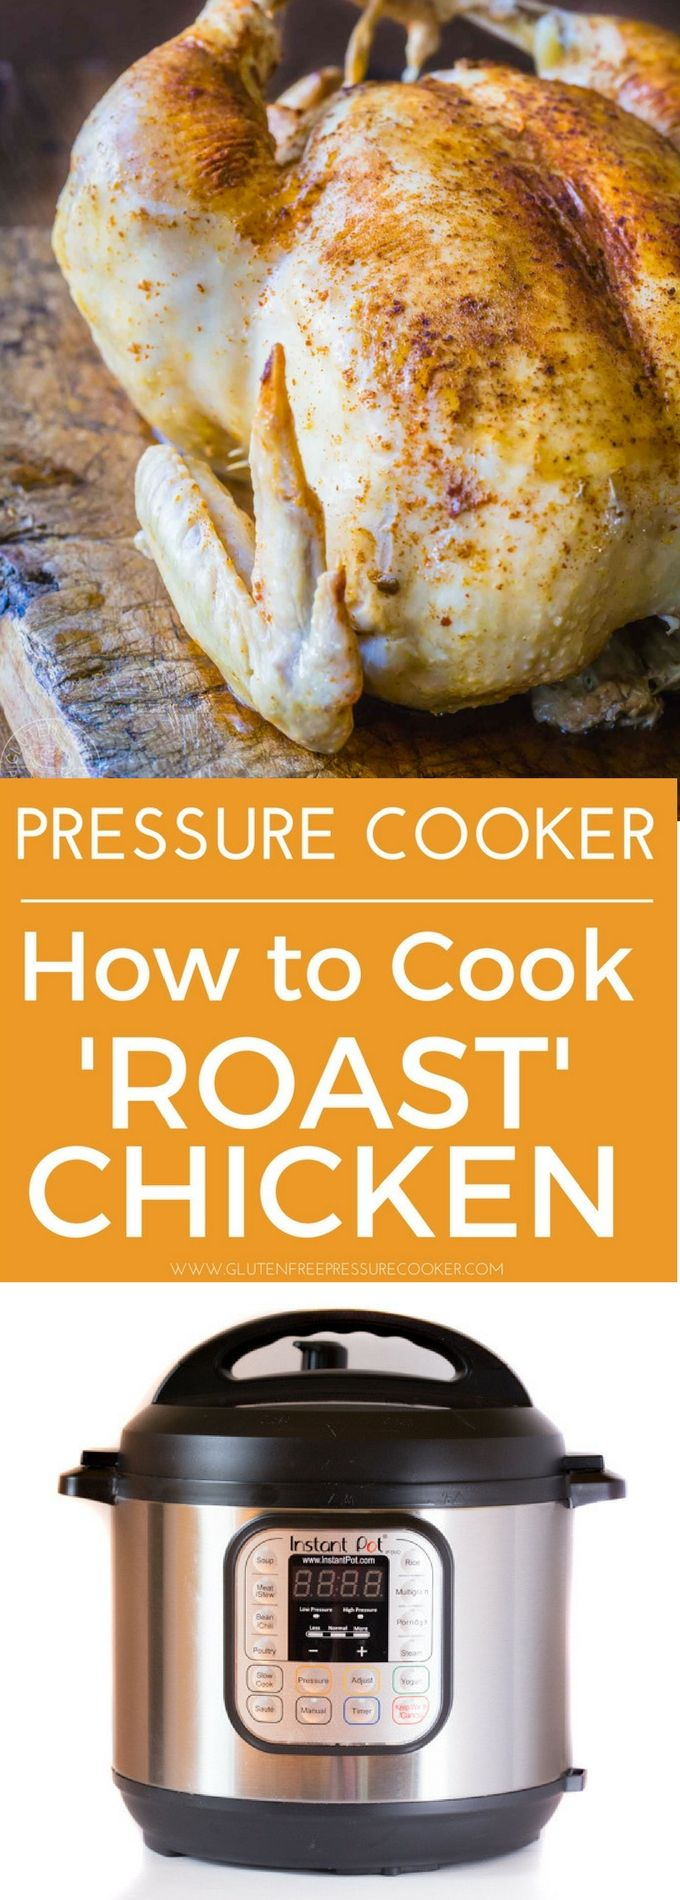 Instant Pot Whole Chicken, cook a rotisserie style whole chicken in your Instant pot or other electric pressure cooker! gluten free, paleo and whole30.